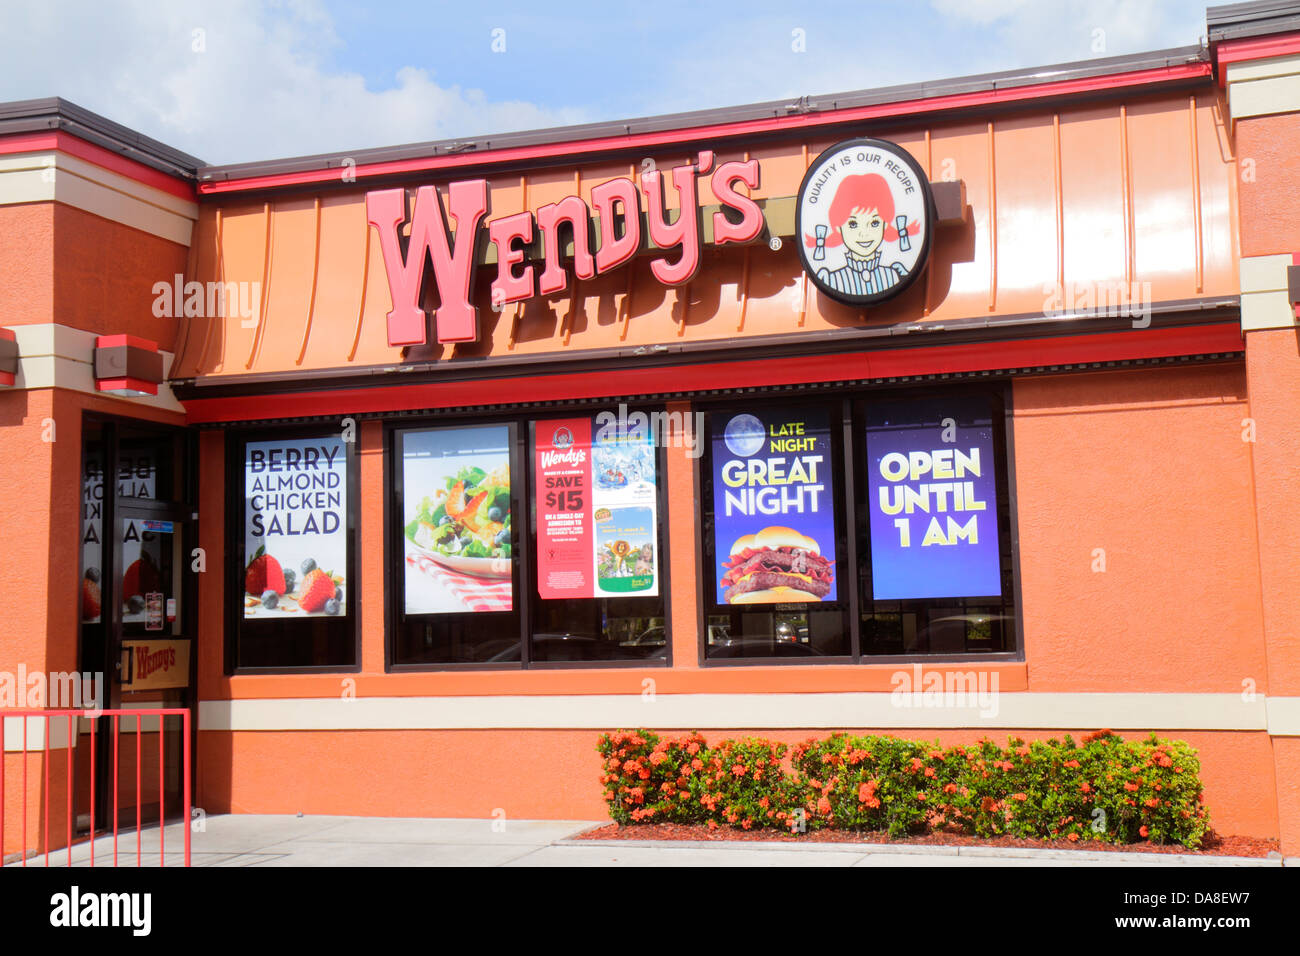 Naples Florida Wendy's fast food restaurant outside exterior posters promotions promotion - Stock Image